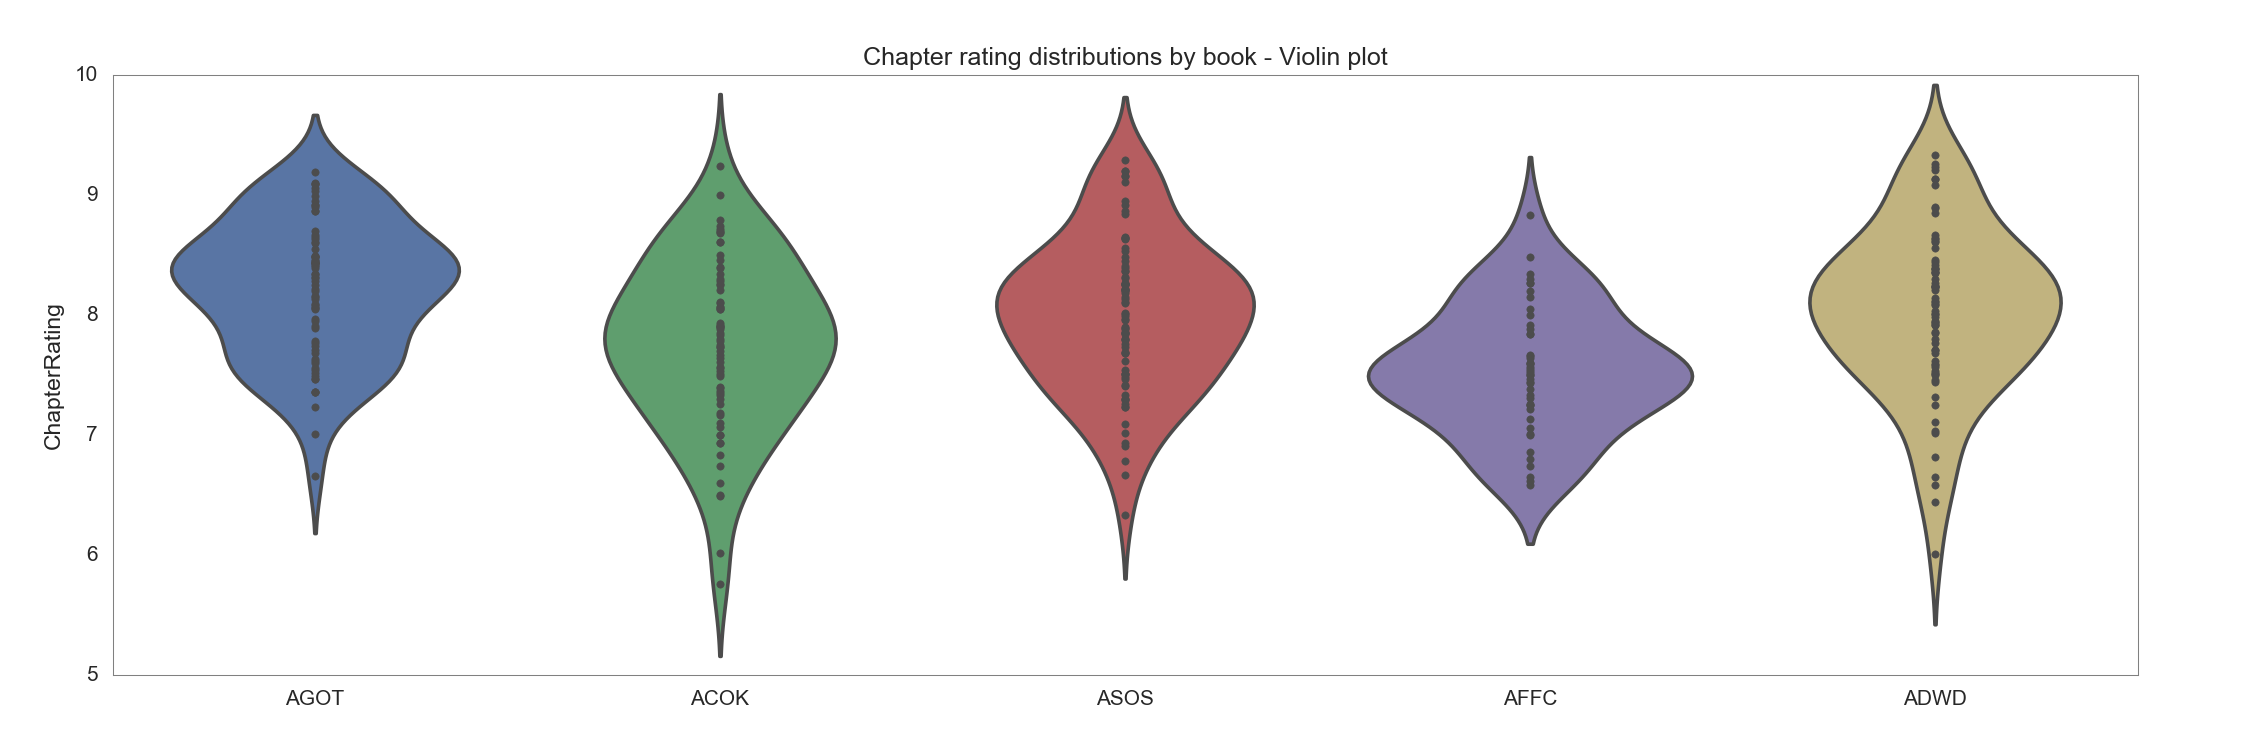 Chapter ratings distribution by book - violin